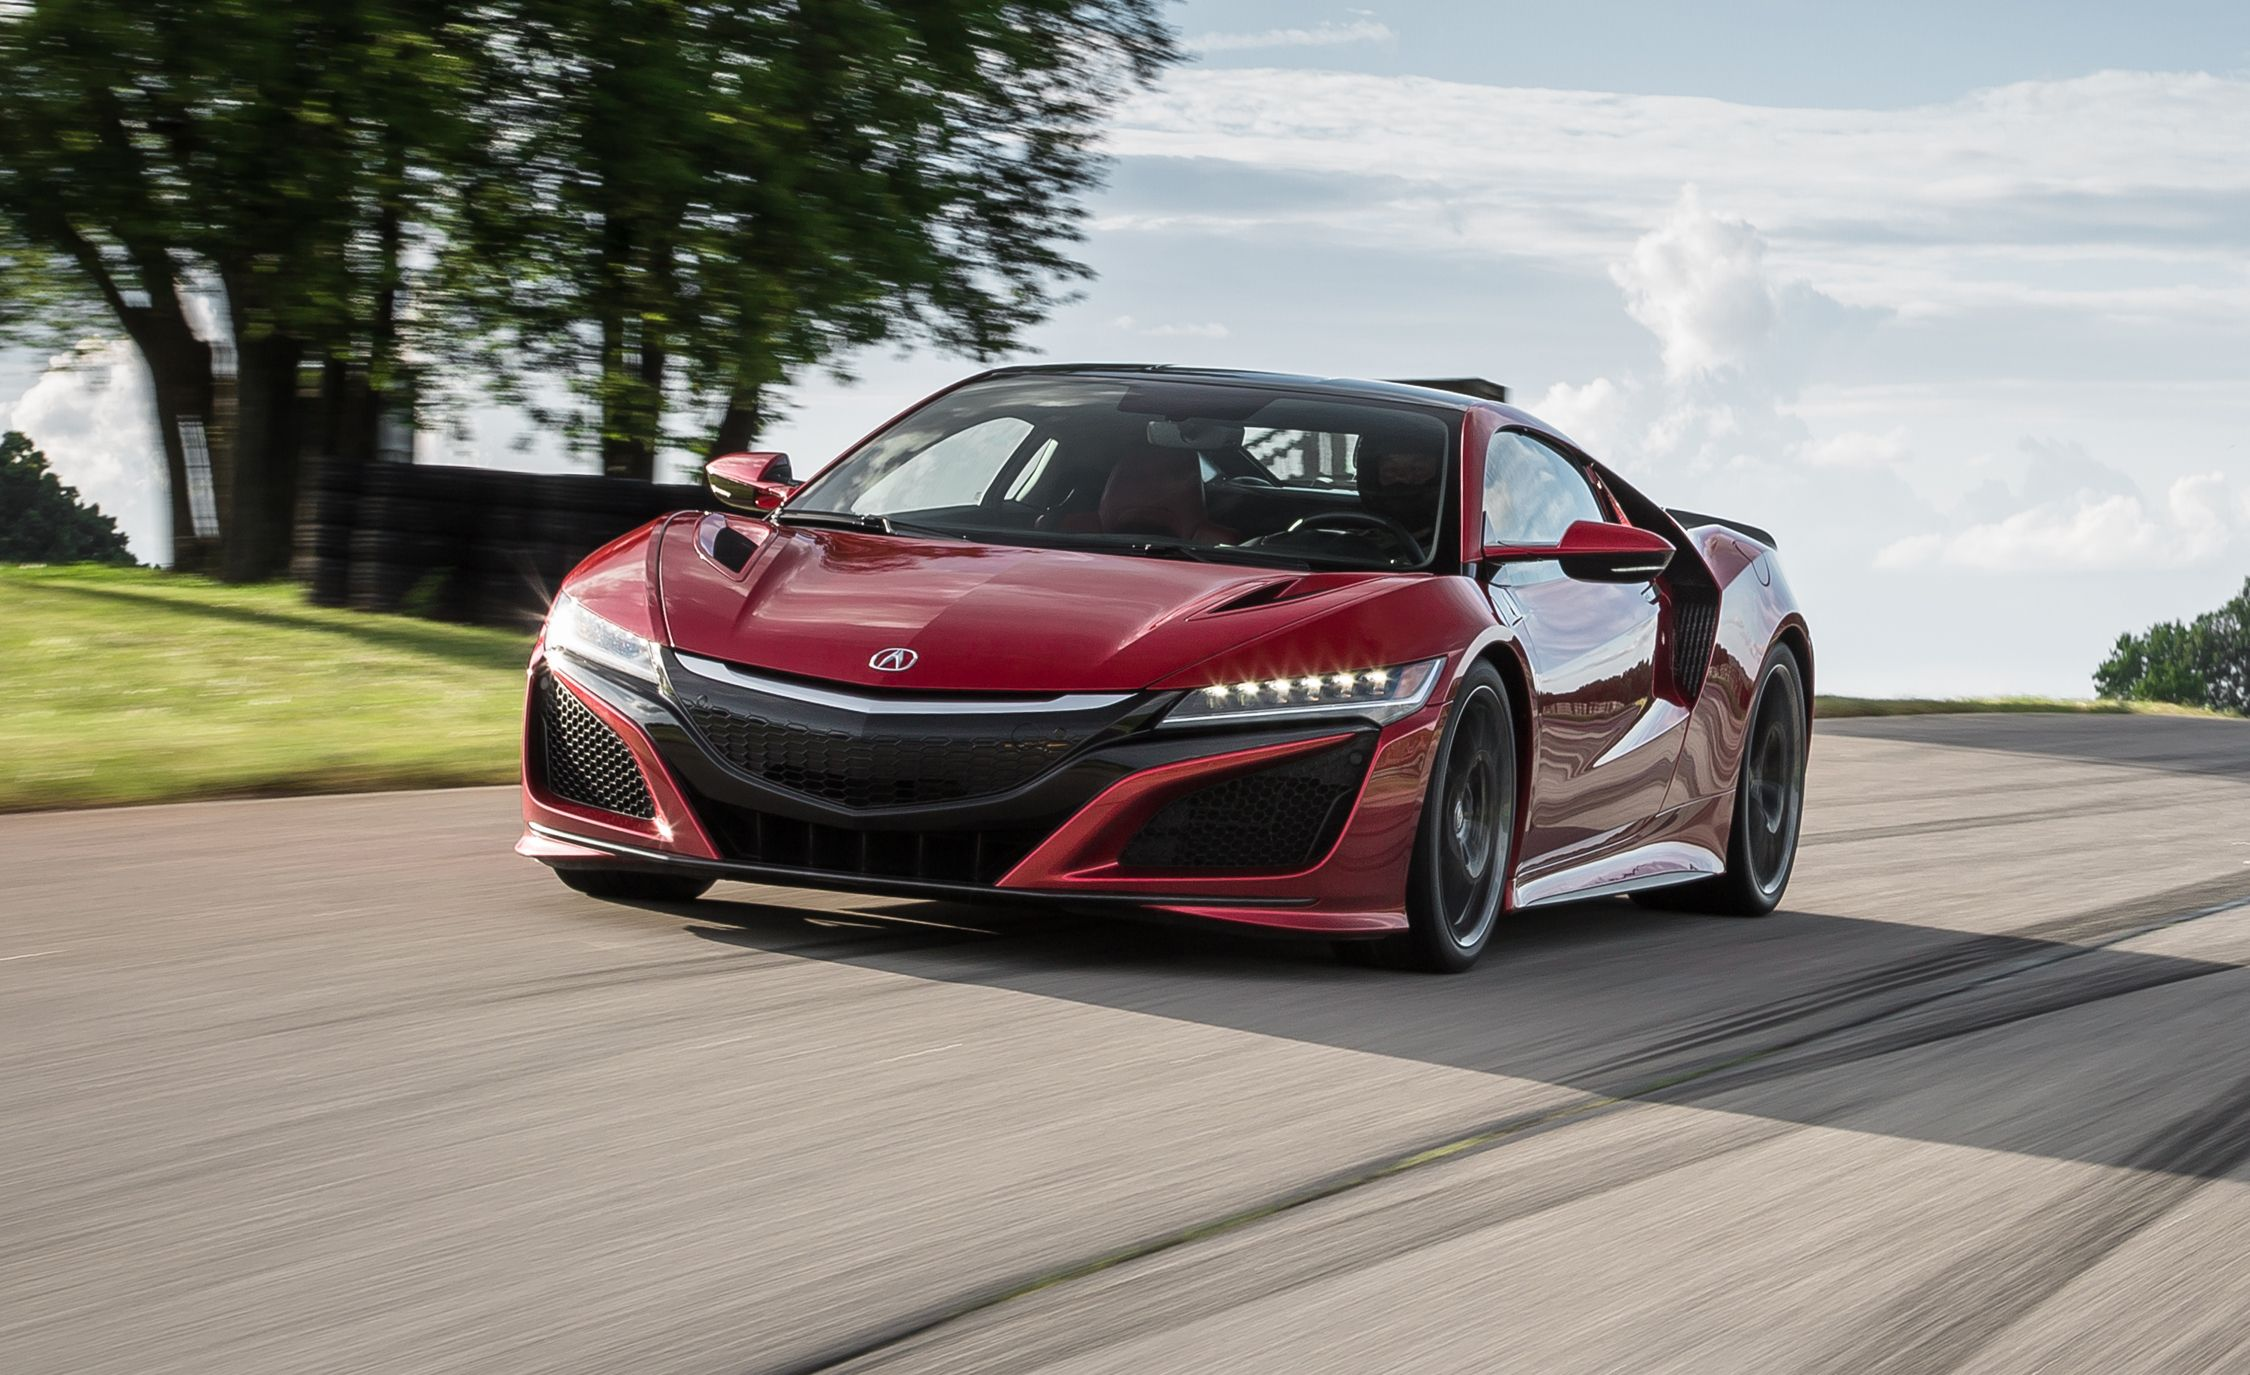 Honda Nsx 2017 >> 2018 Acura NSX | In-Depth Model Review | Car and Driver